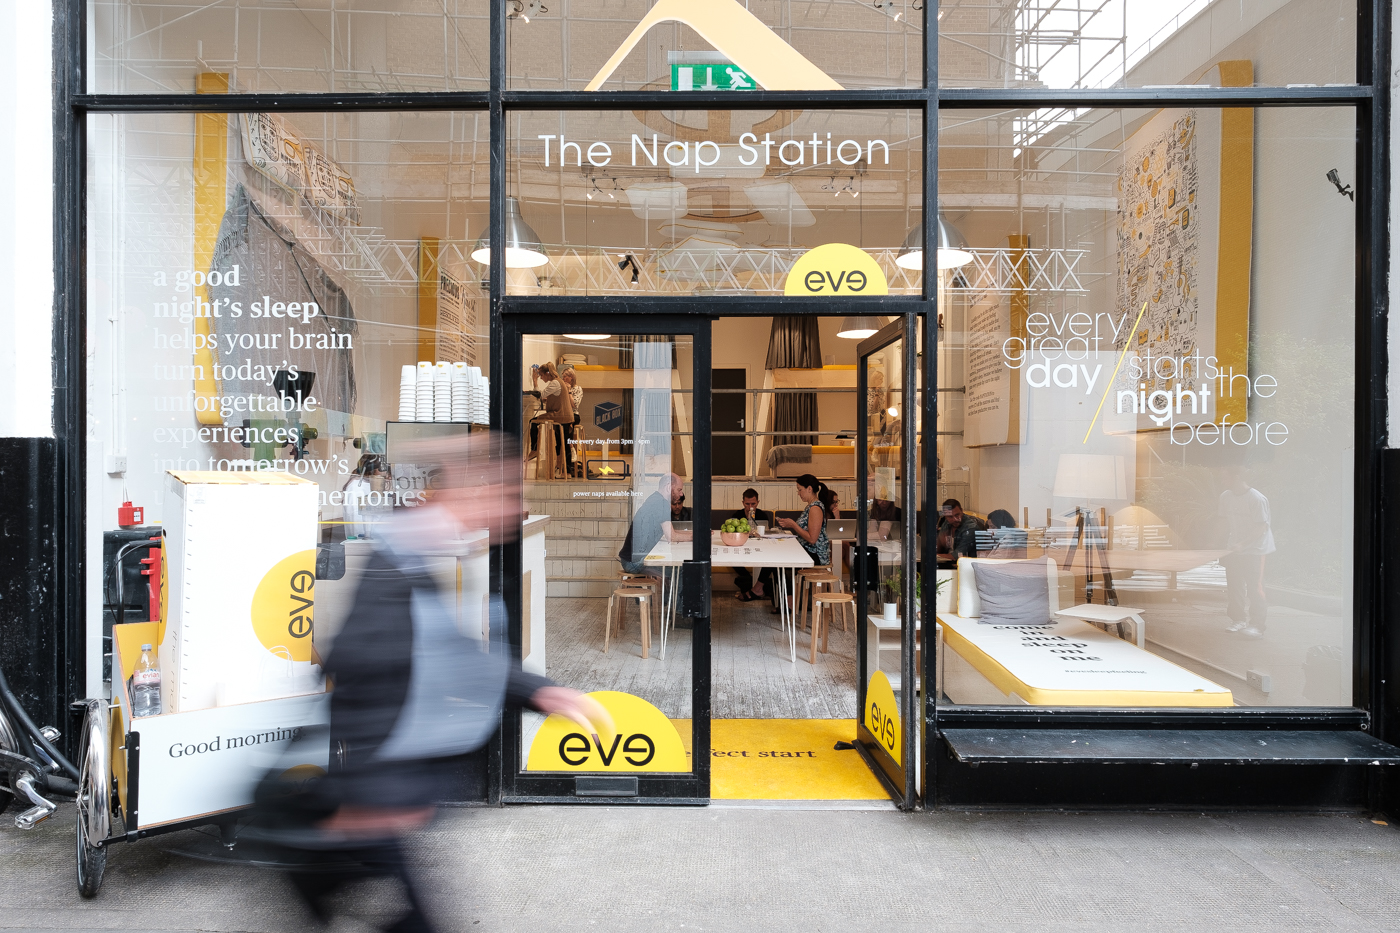 Eve Sleep London Has A Nap Station Meet The Men From Eve Sleep Who Are